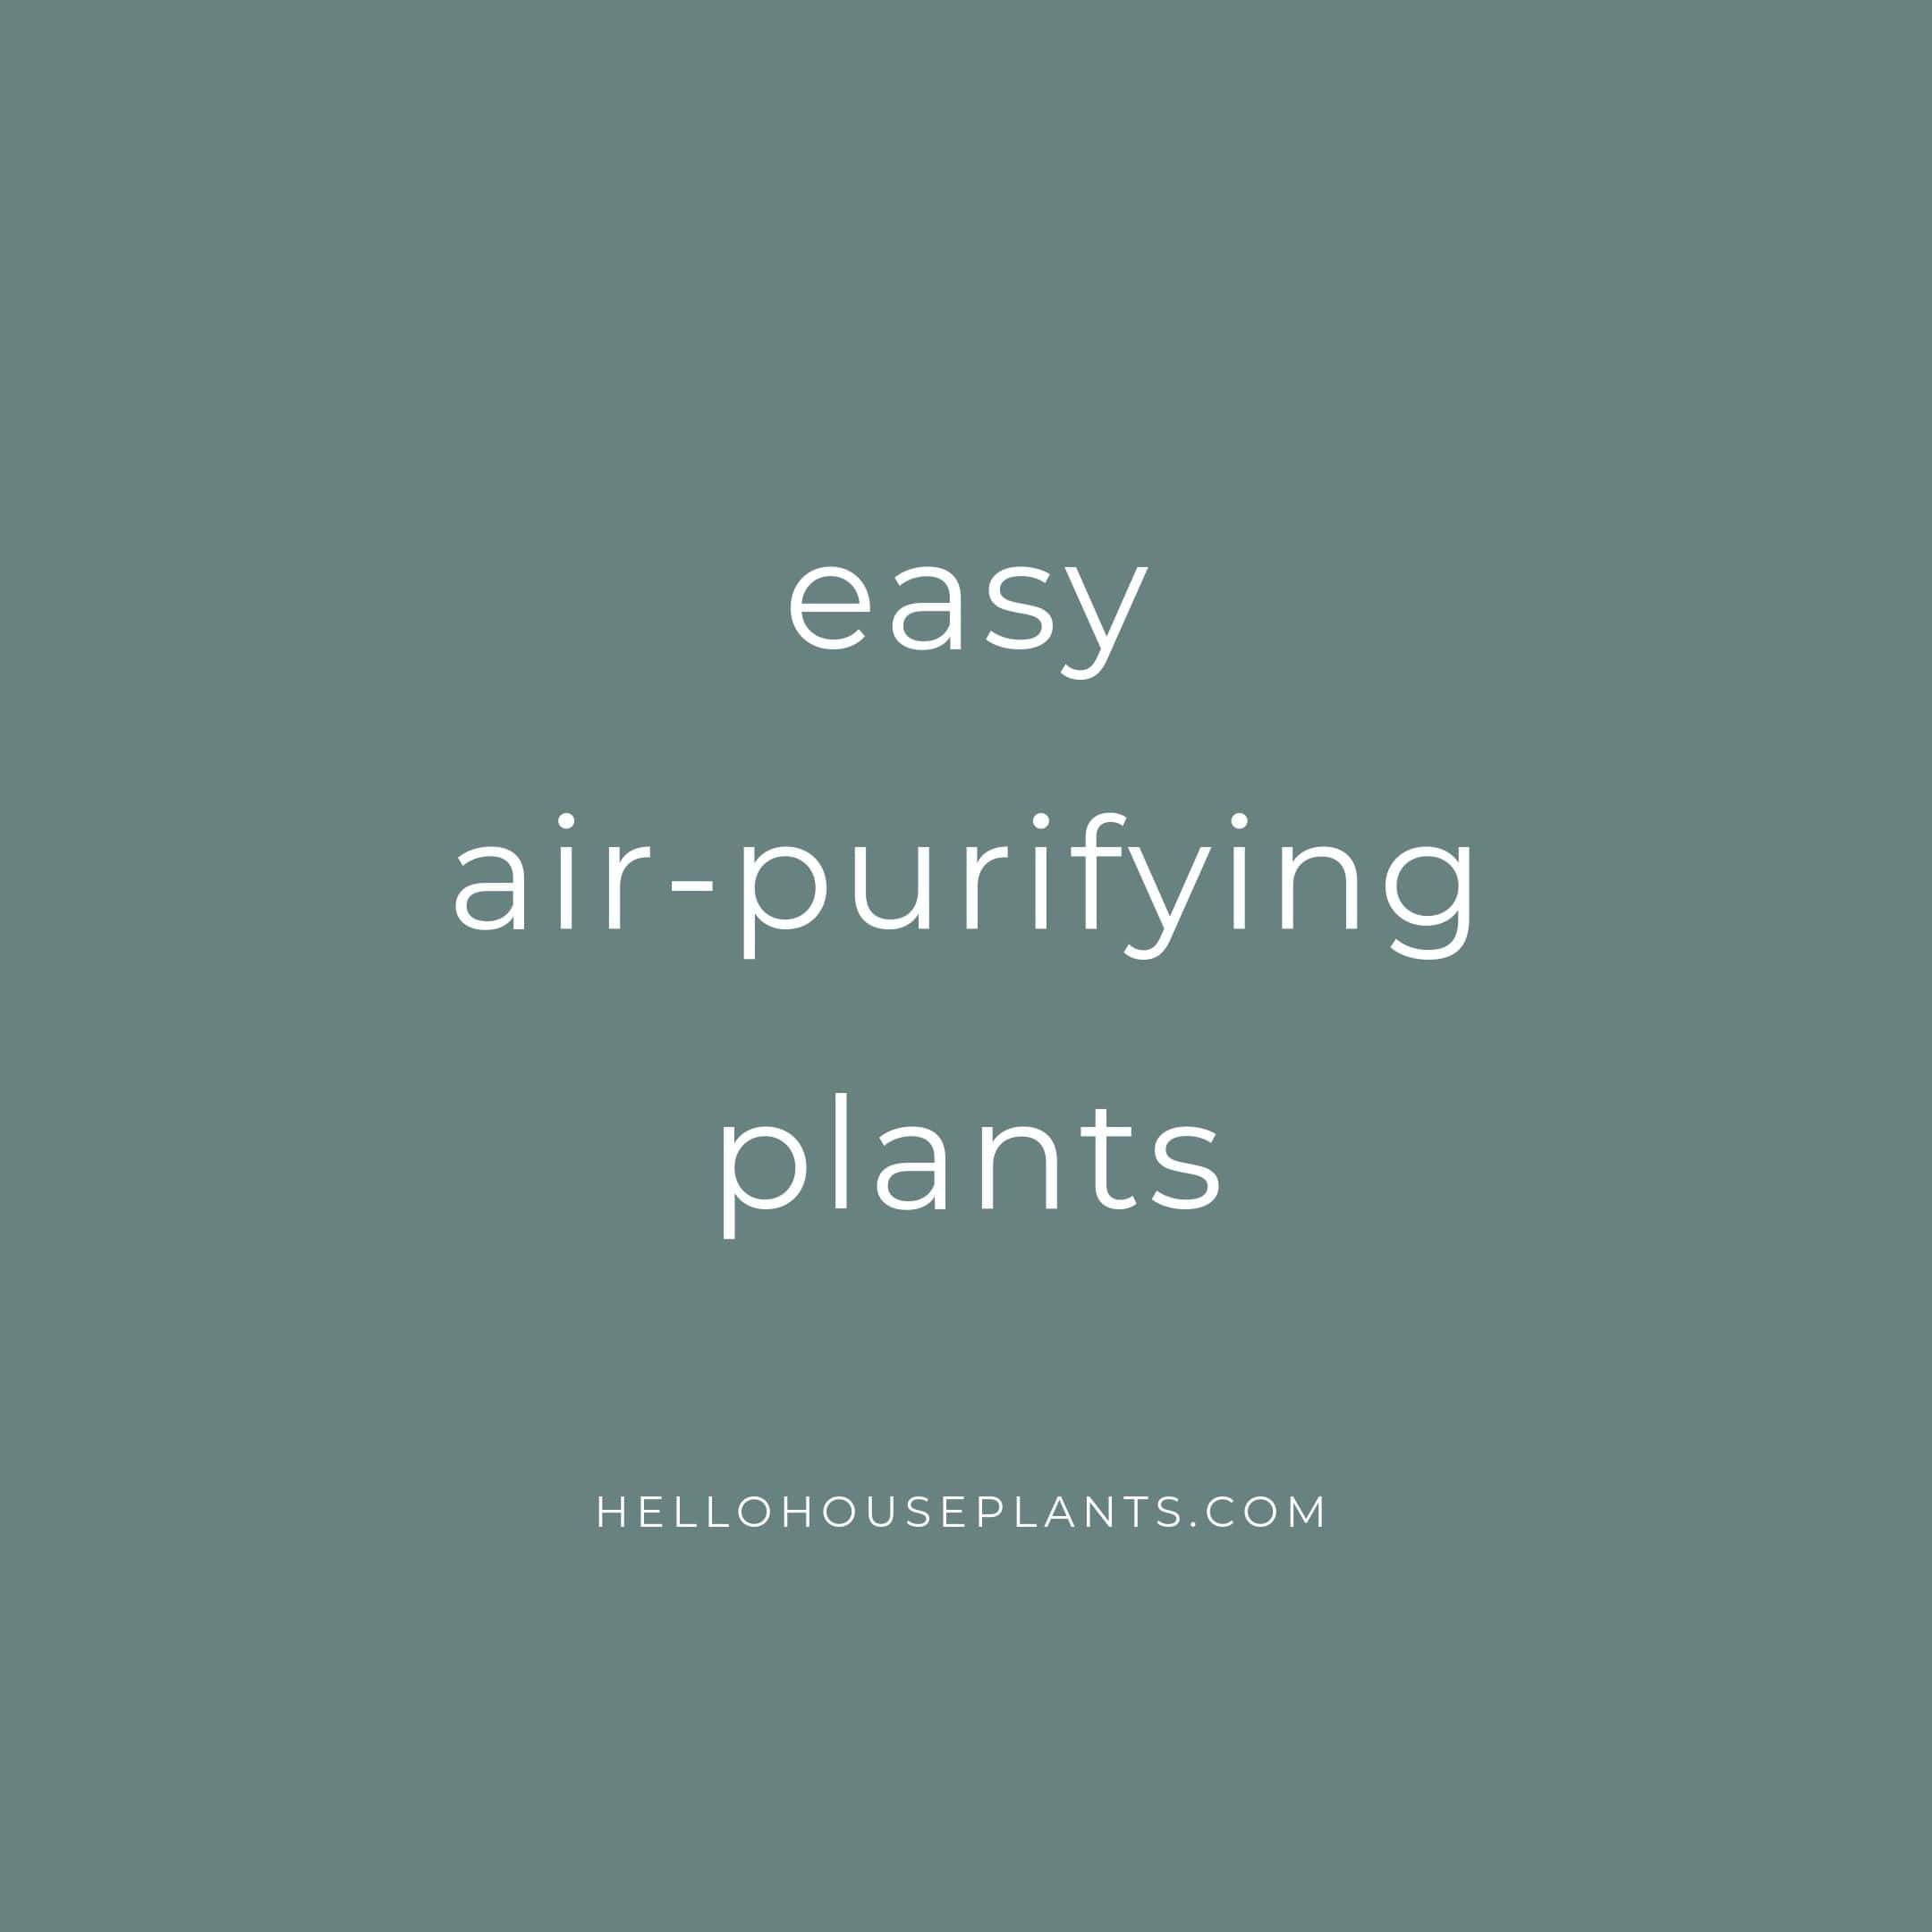 7 Easy plants that help purify the air in your home